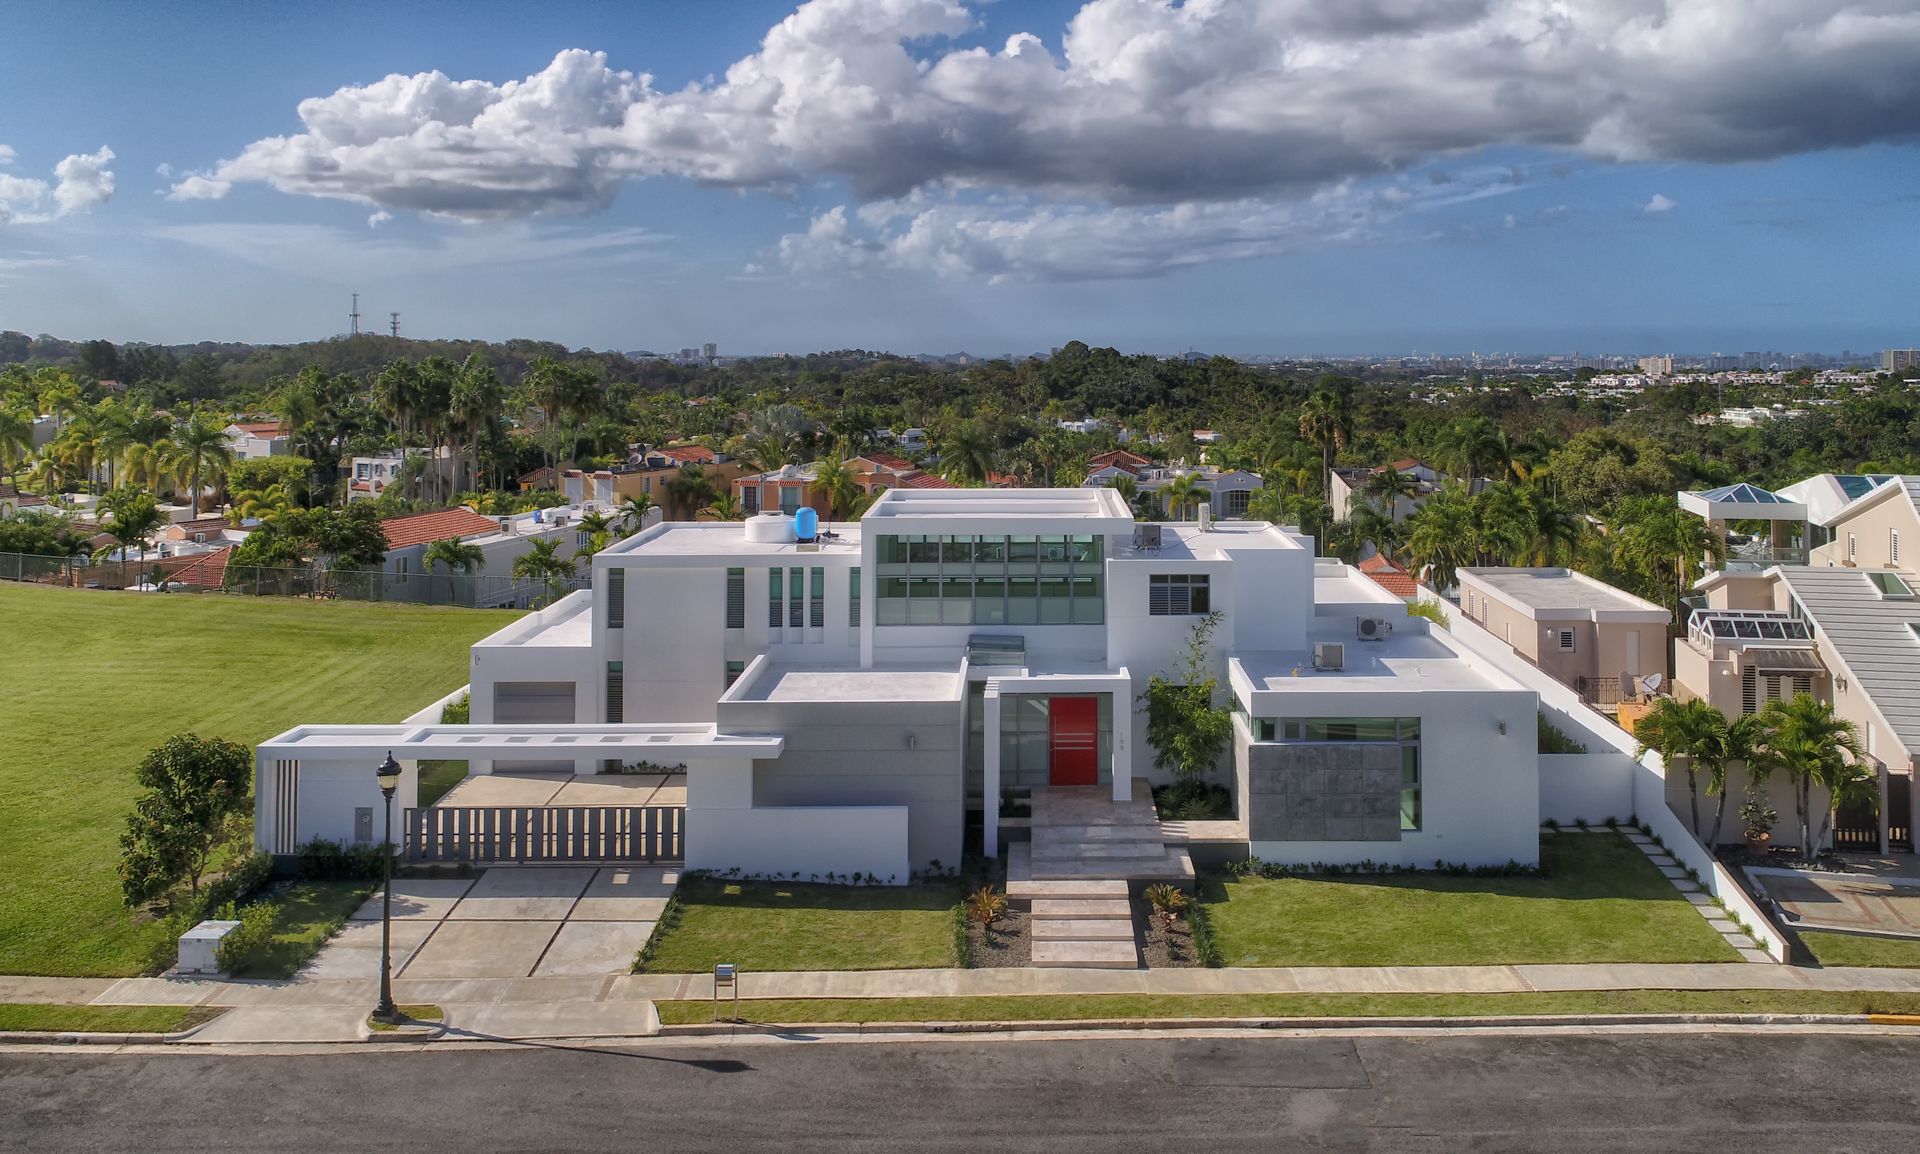 Single Family Home for Sale at Modern Architectural Estate in Montehiedra 168 Calle Tortola Montehiedra San Juan, 00926 Puerto Rico